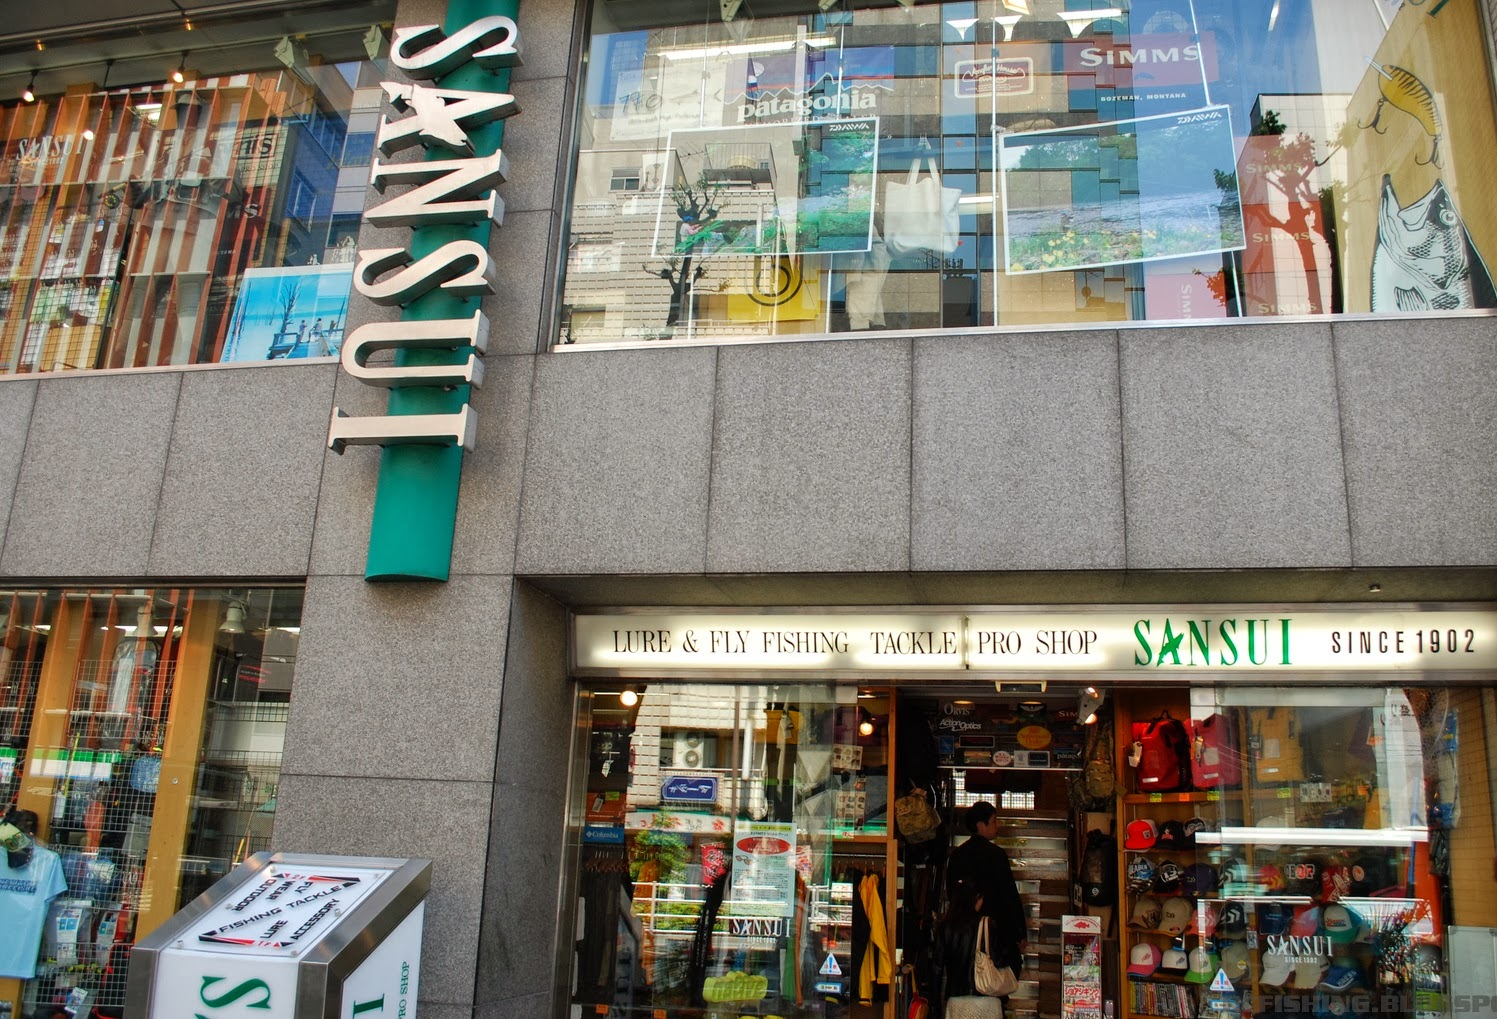 Rc fishing tackle stores in tokyo part 1 shibuya for Fishing supply stores